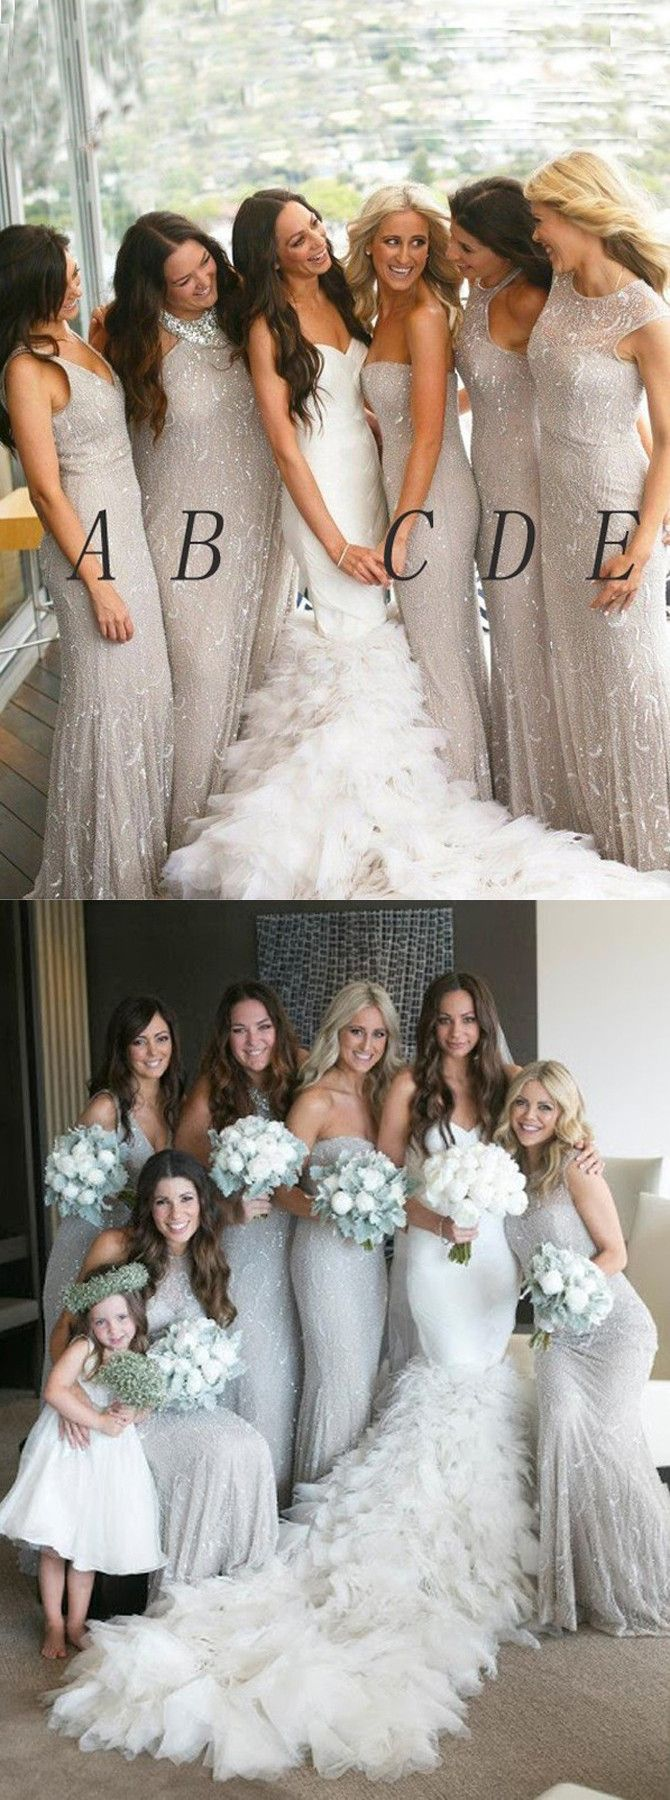 The 25 best unique bridesmaid dresses ideas on pinterest summer 2017 bridesmaid dressesseuqins bridesmaid dressesgrey bridesmaid dressesunique bridesmaid dresses ombrellifo Images